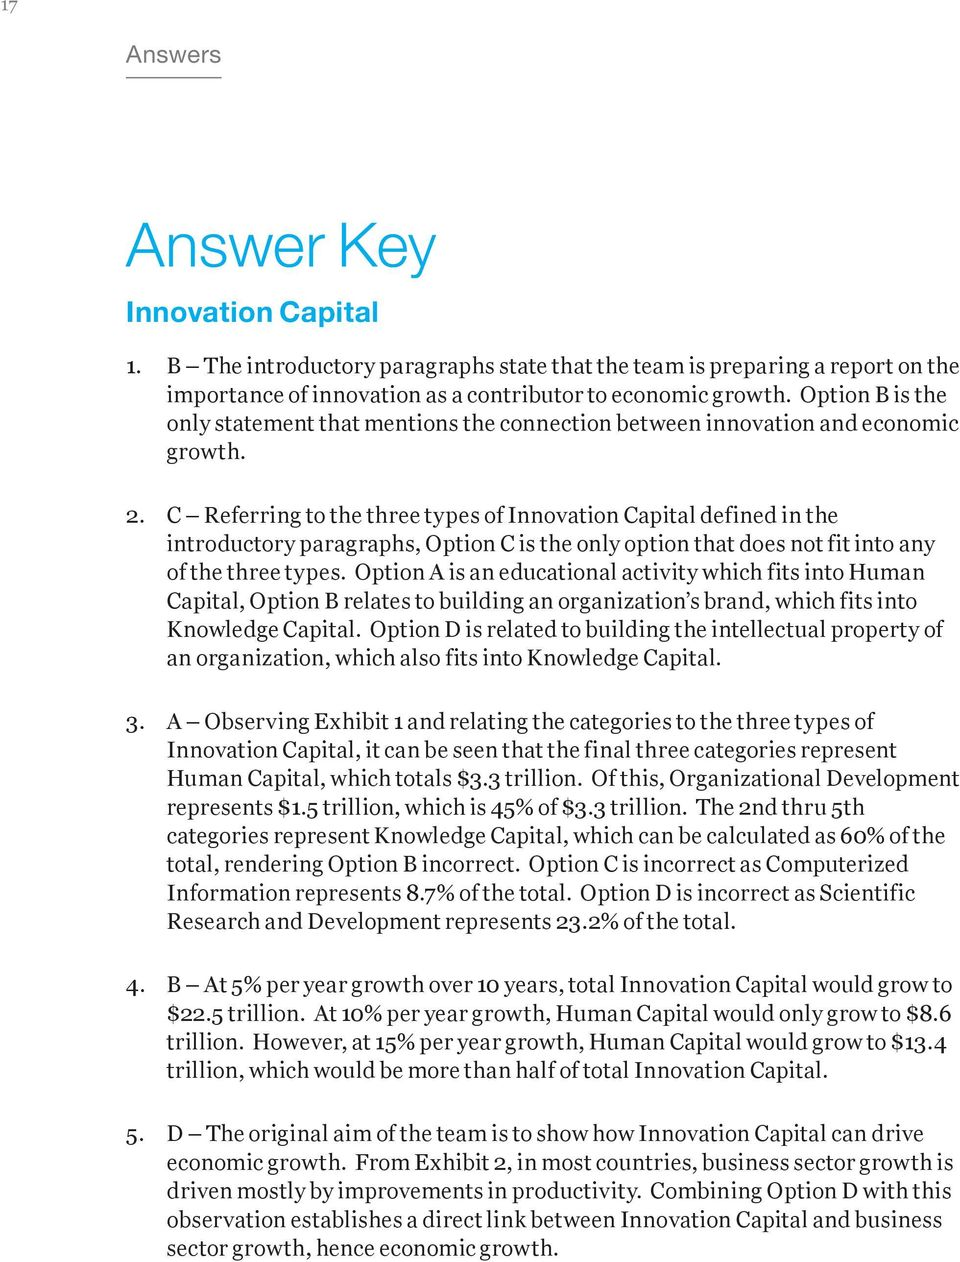 C Referring to the three types of Innovation Capital defined in the introductory paragraphs, Option C is the only option that does not fit into any of the three types.